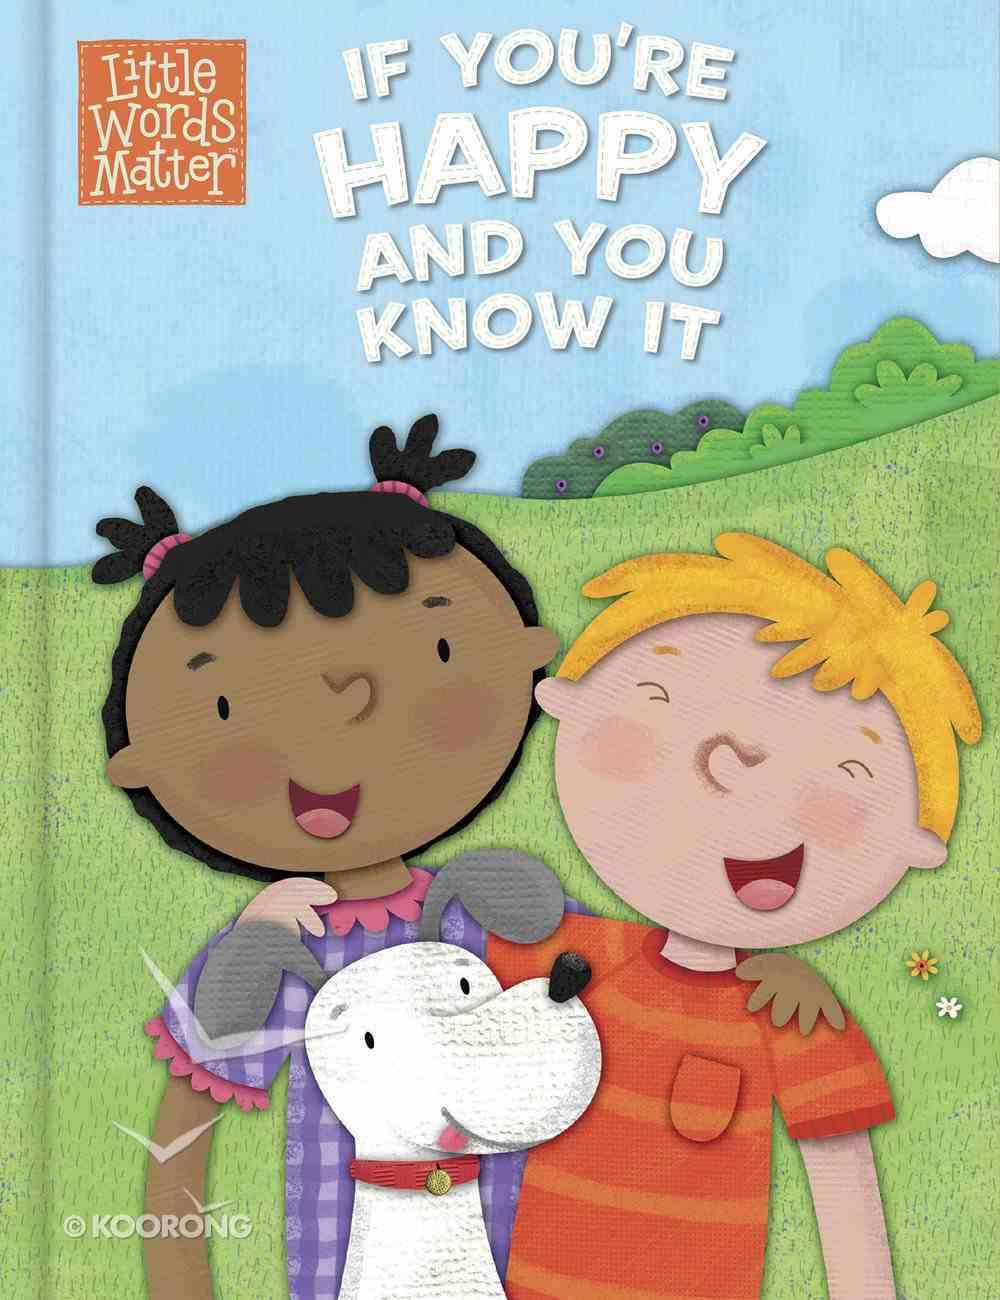 If You're Happy and You Know It (Little Words Matter Series) eBook